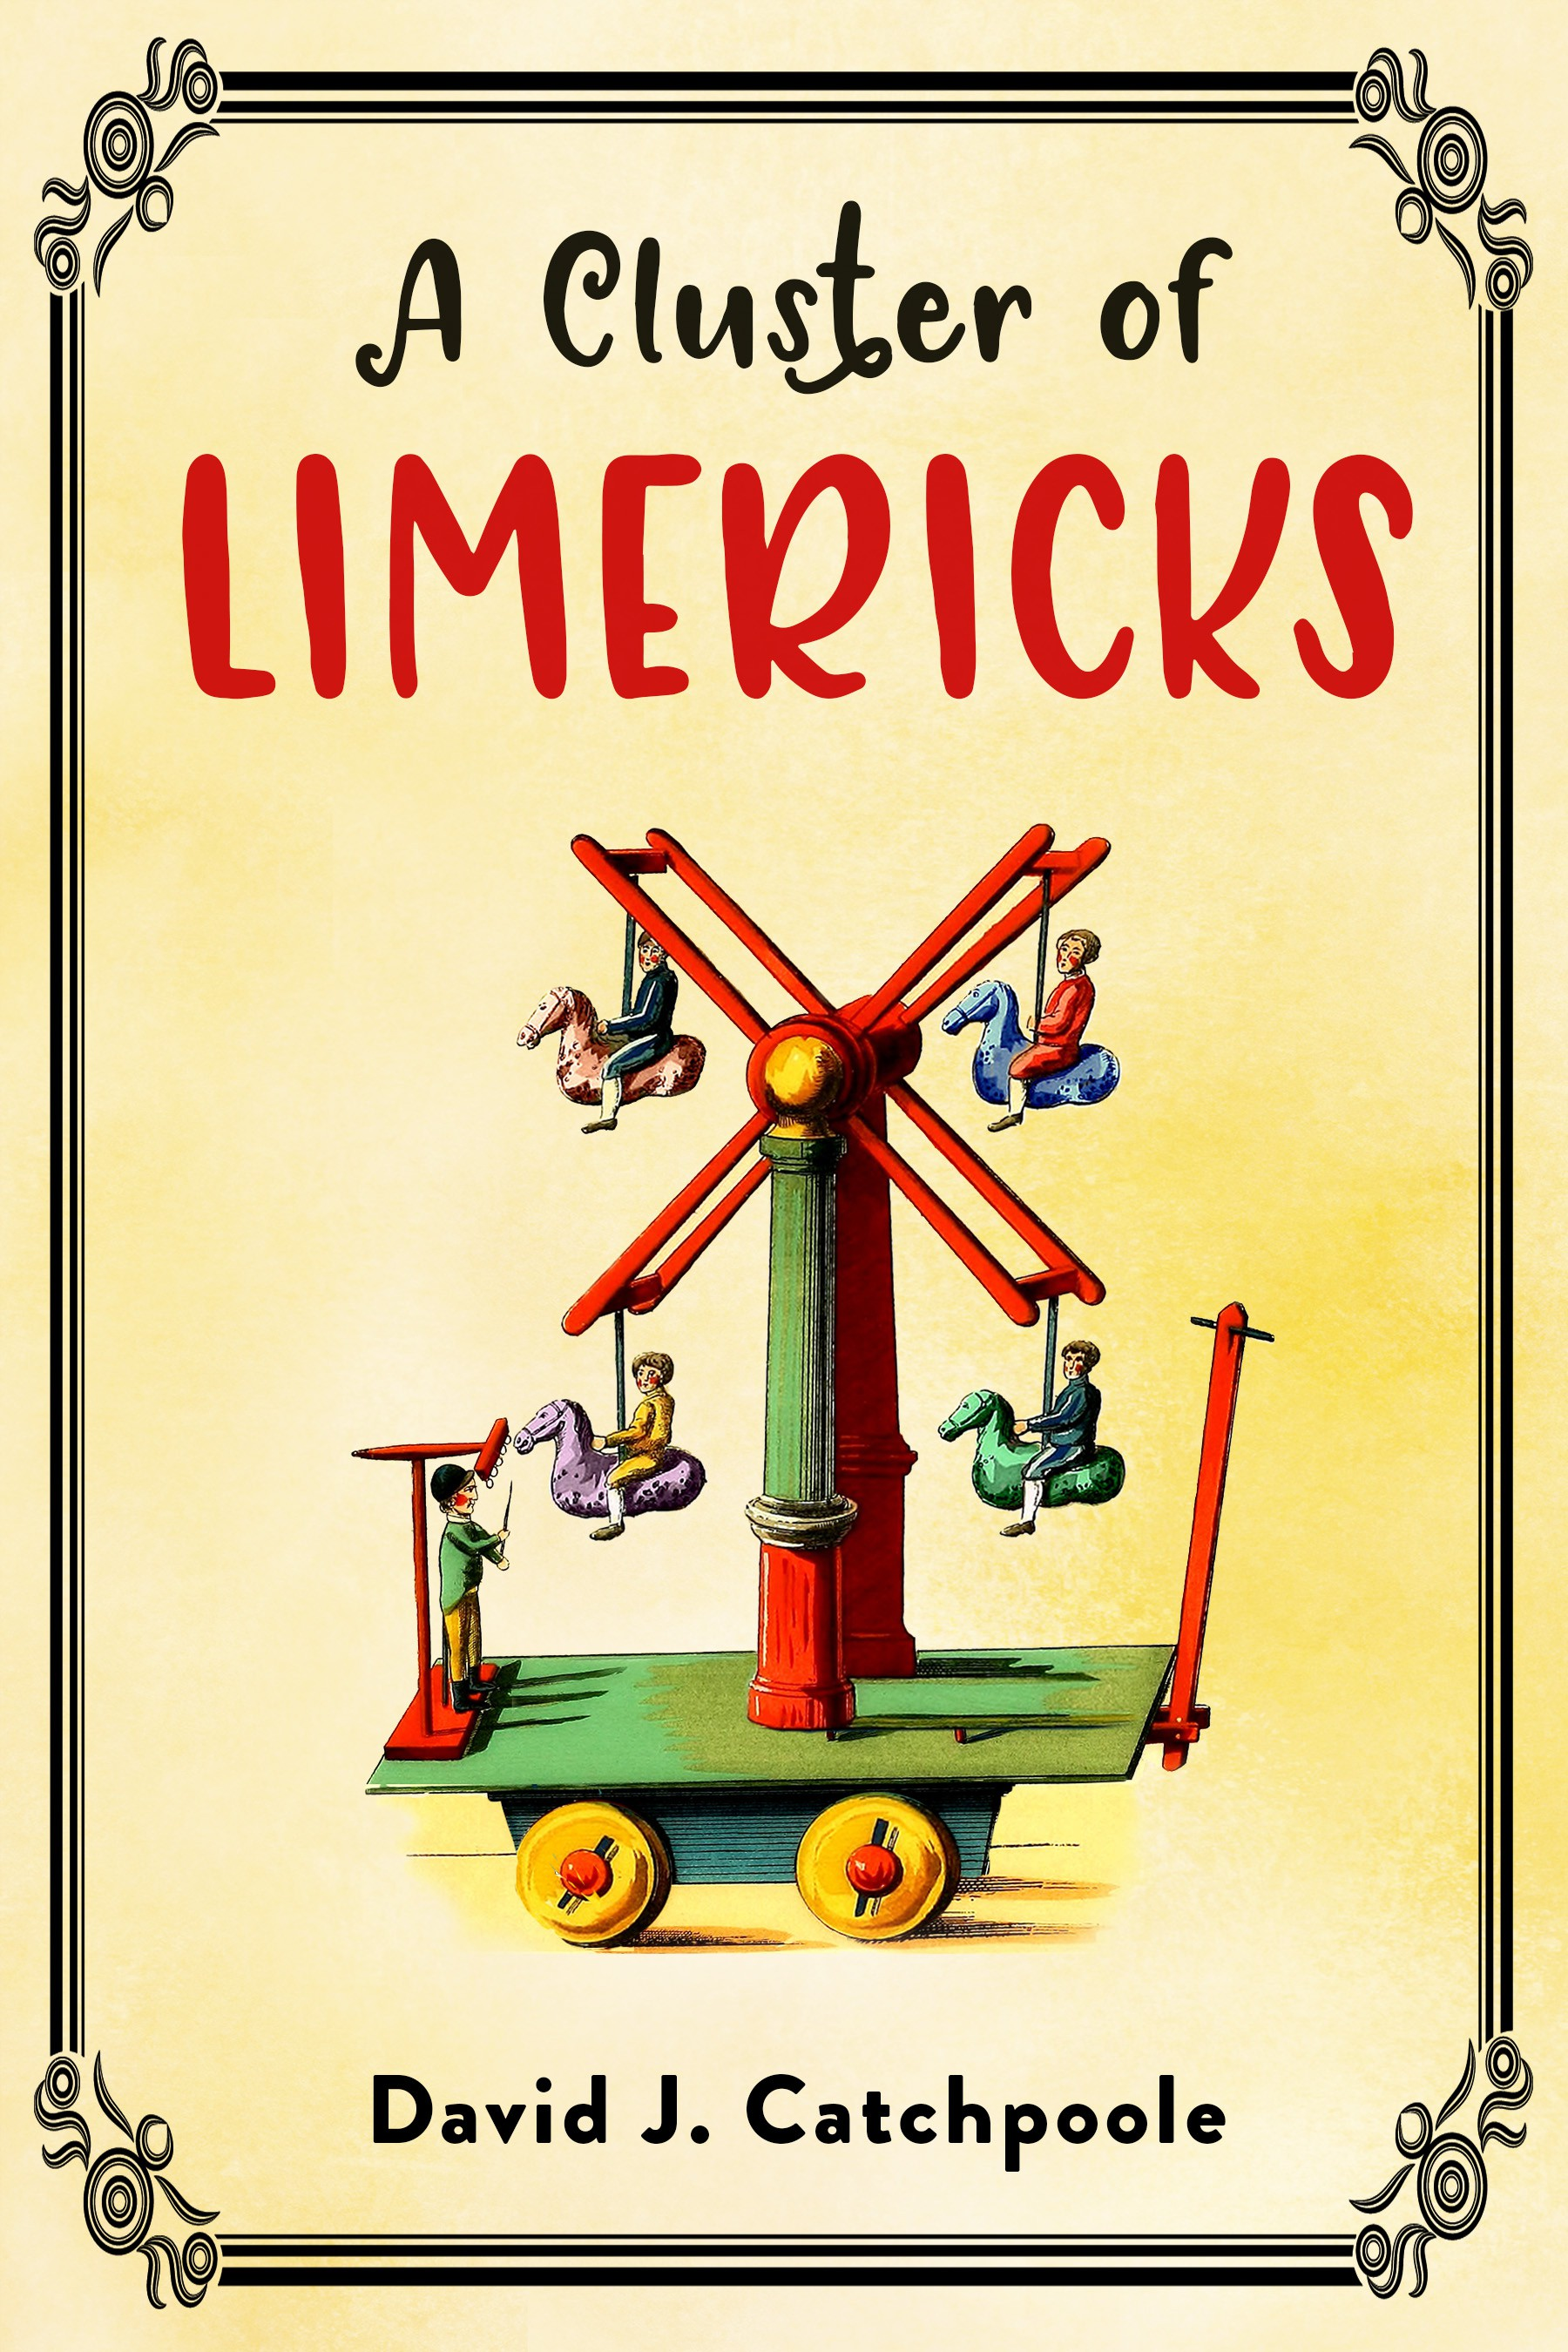 Design a book cover for A Cluster of Limericks